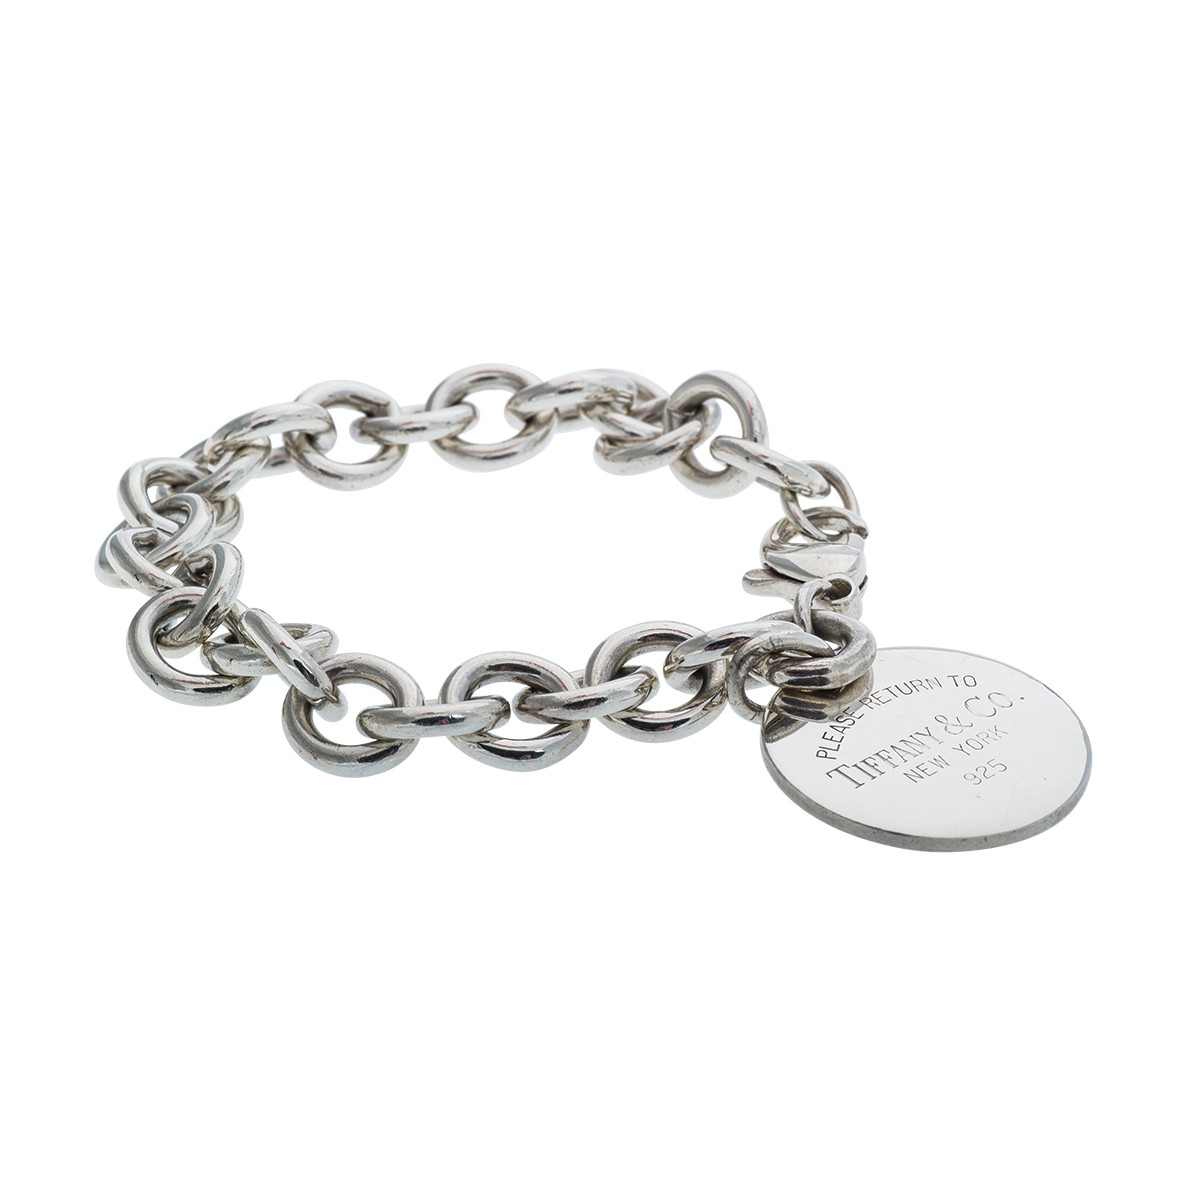 Vintage Tiffany & Co. Please Return to Tiffany Bracelet